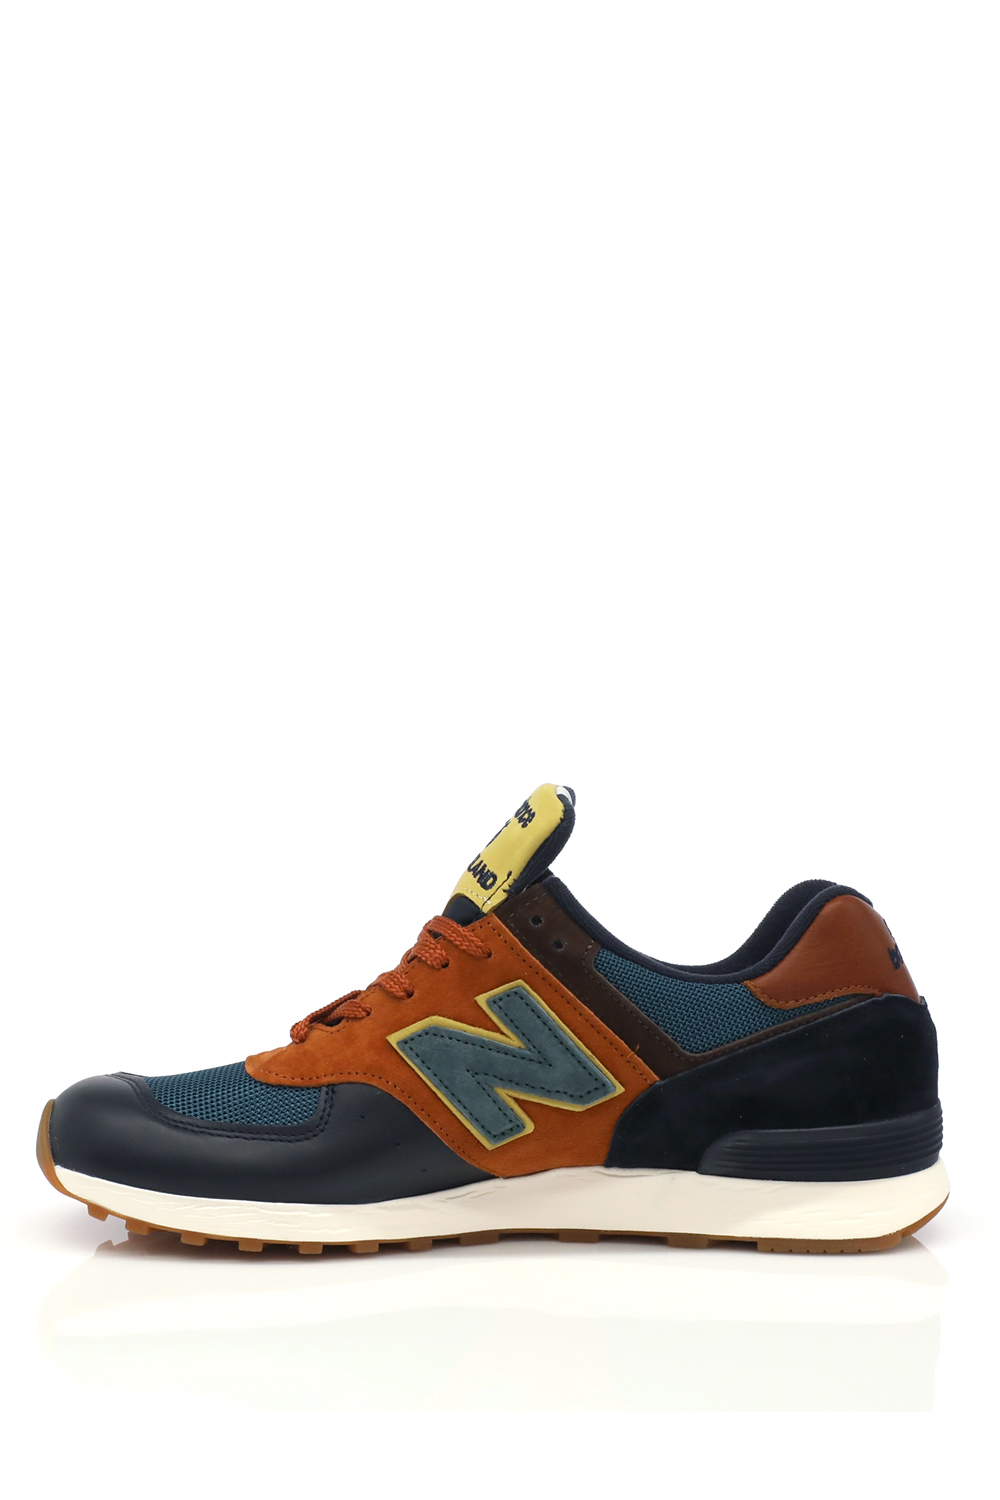 NEW BALANCE – Ανδρικά sneakers NEW BALANCE 576 Yard Pack μπλε